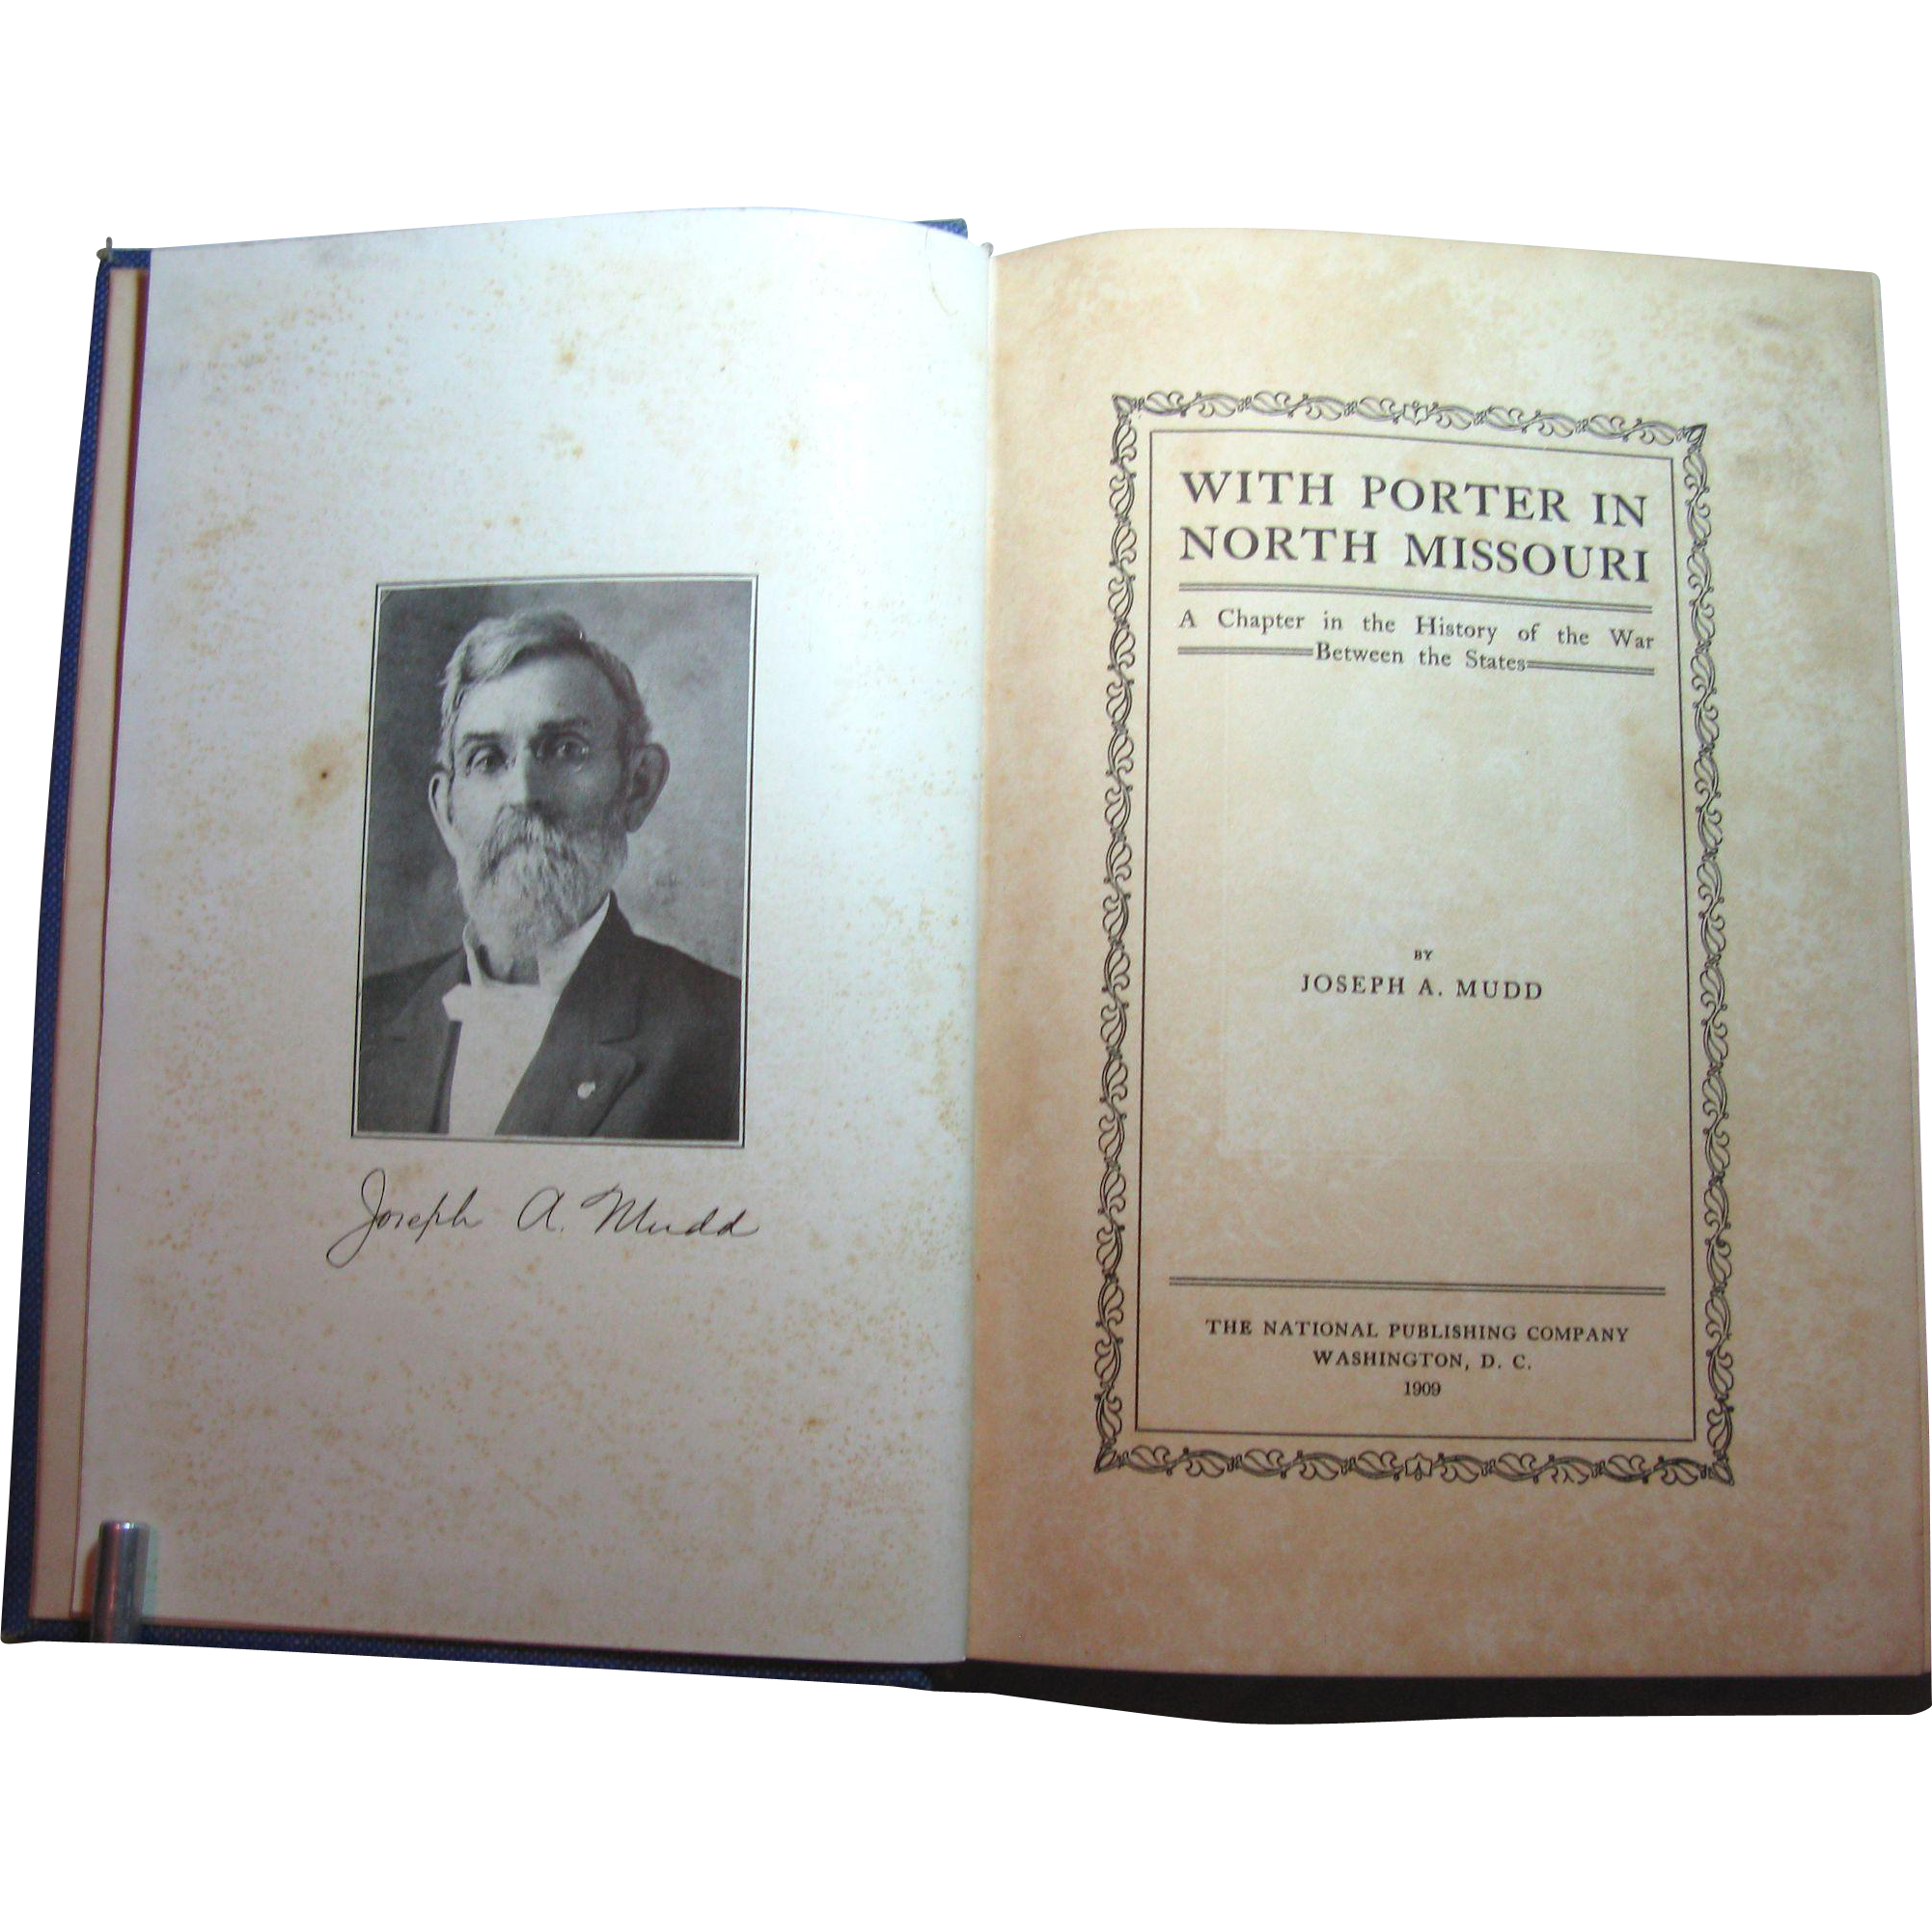 With Porter in North Missouri - Civil War Book